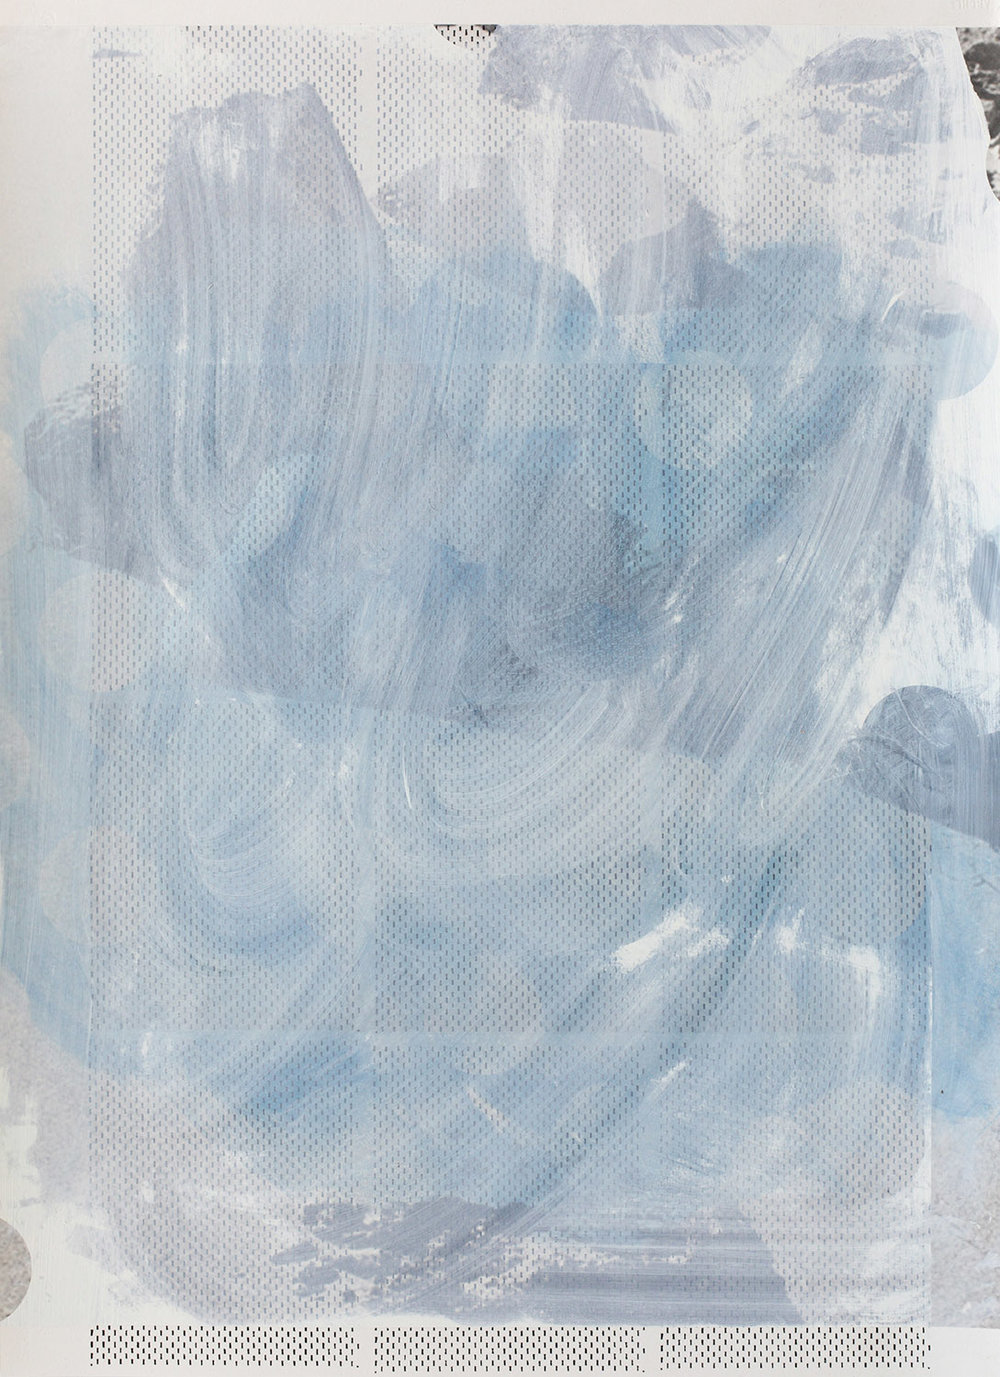 Untitled, 2014  Acrylic, oil and UV cured ink on paper  29-3/4 x 21-3/4 inches  75.57 x 55.25 cm